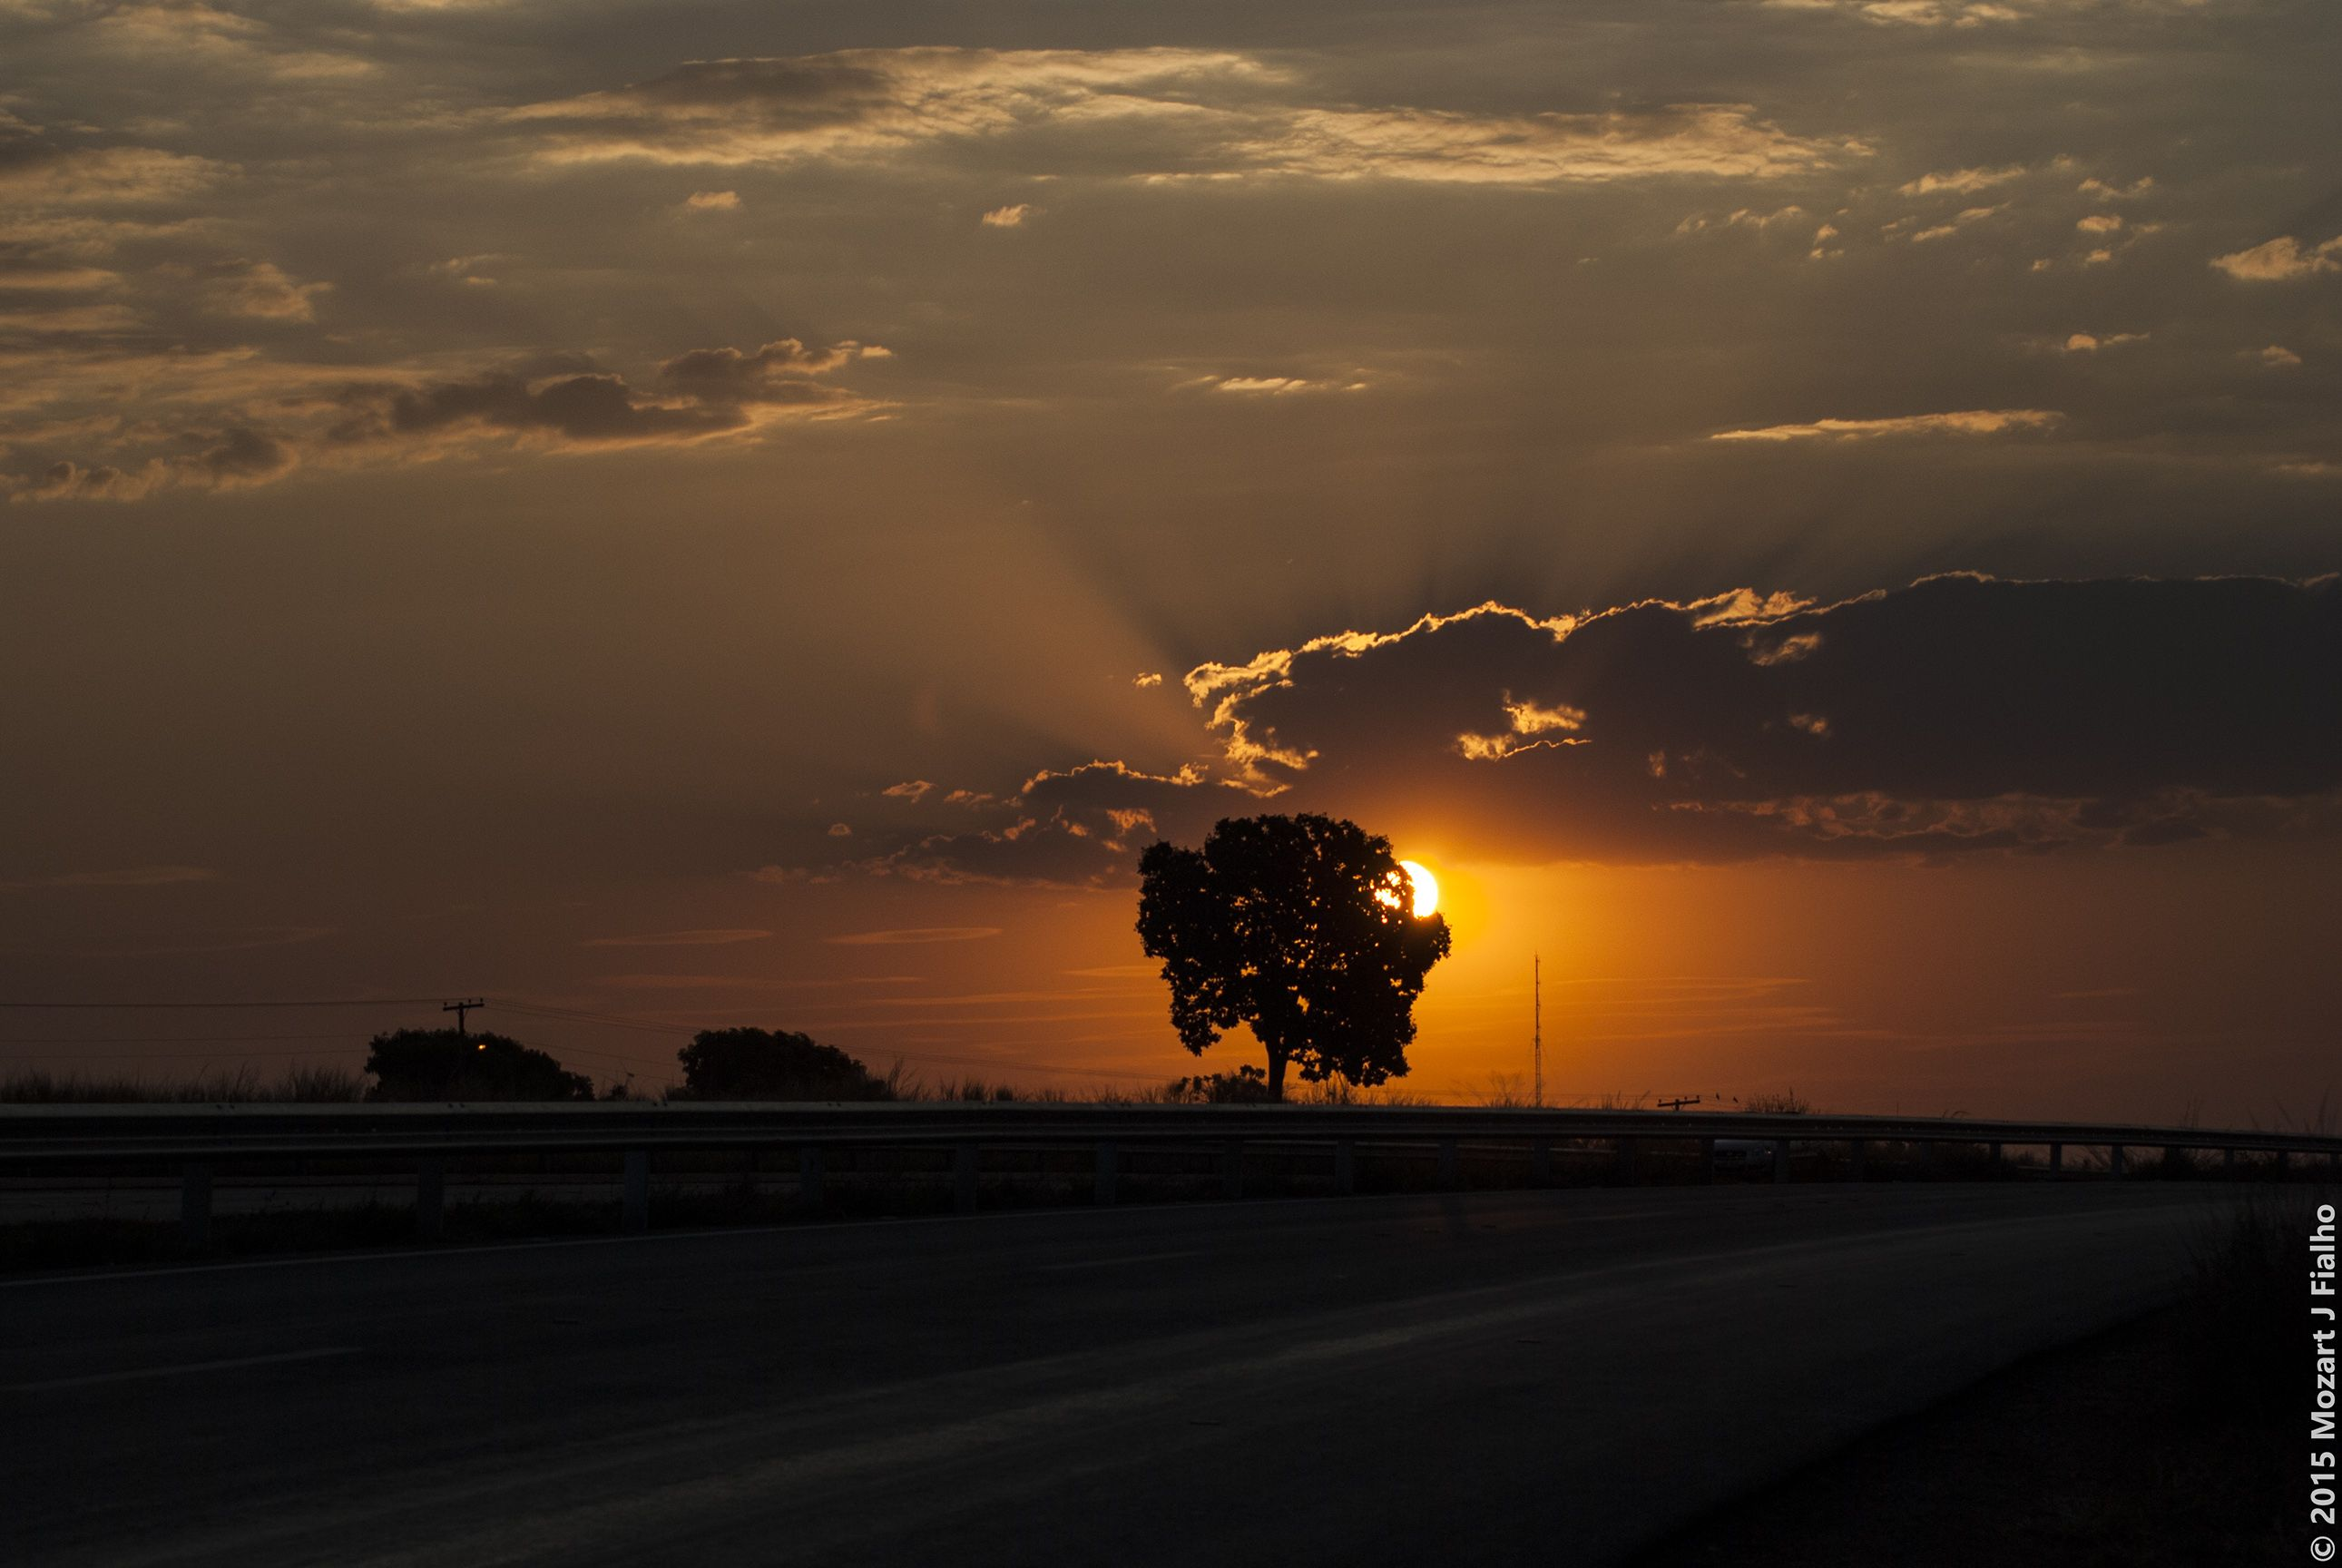 Sunset from the highway.